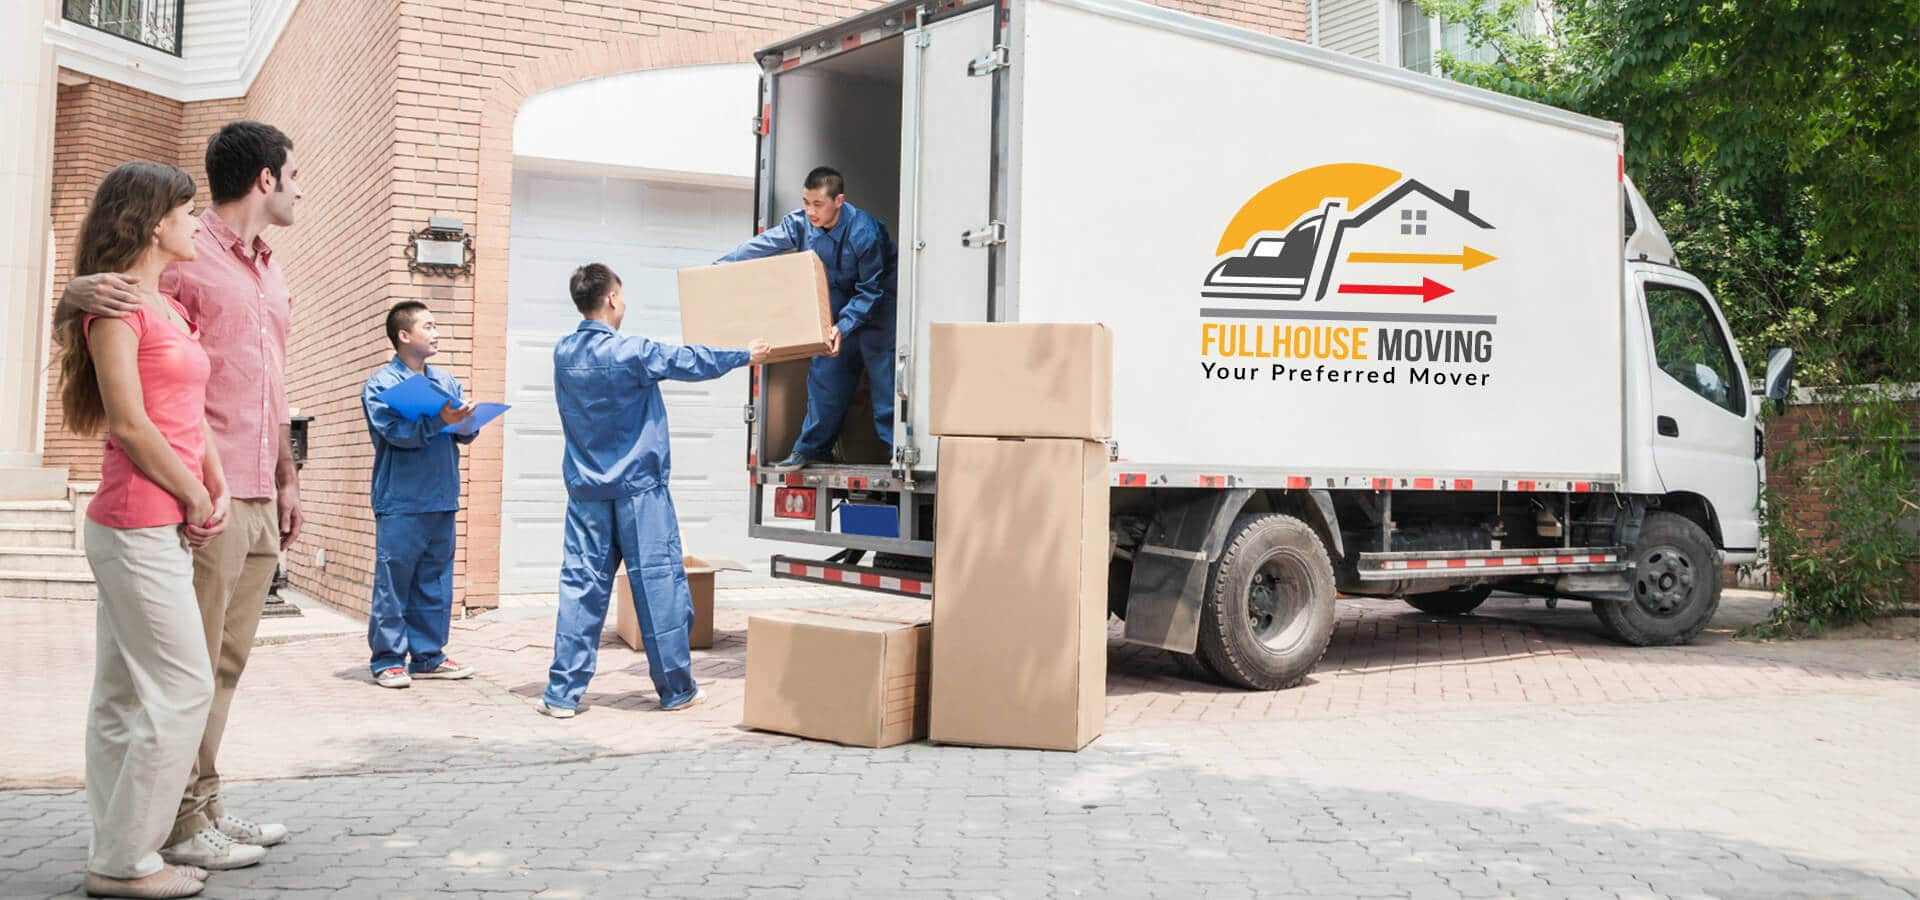 eviction and estate moving nyc, art handling moving nyc, house movers nyc, commercial movers nyc, furniture movers company nyc, local movers nyc, long distance moving nyc, moving company nyc, moving and storage company, furniture moving company nyc, piano movers nyc